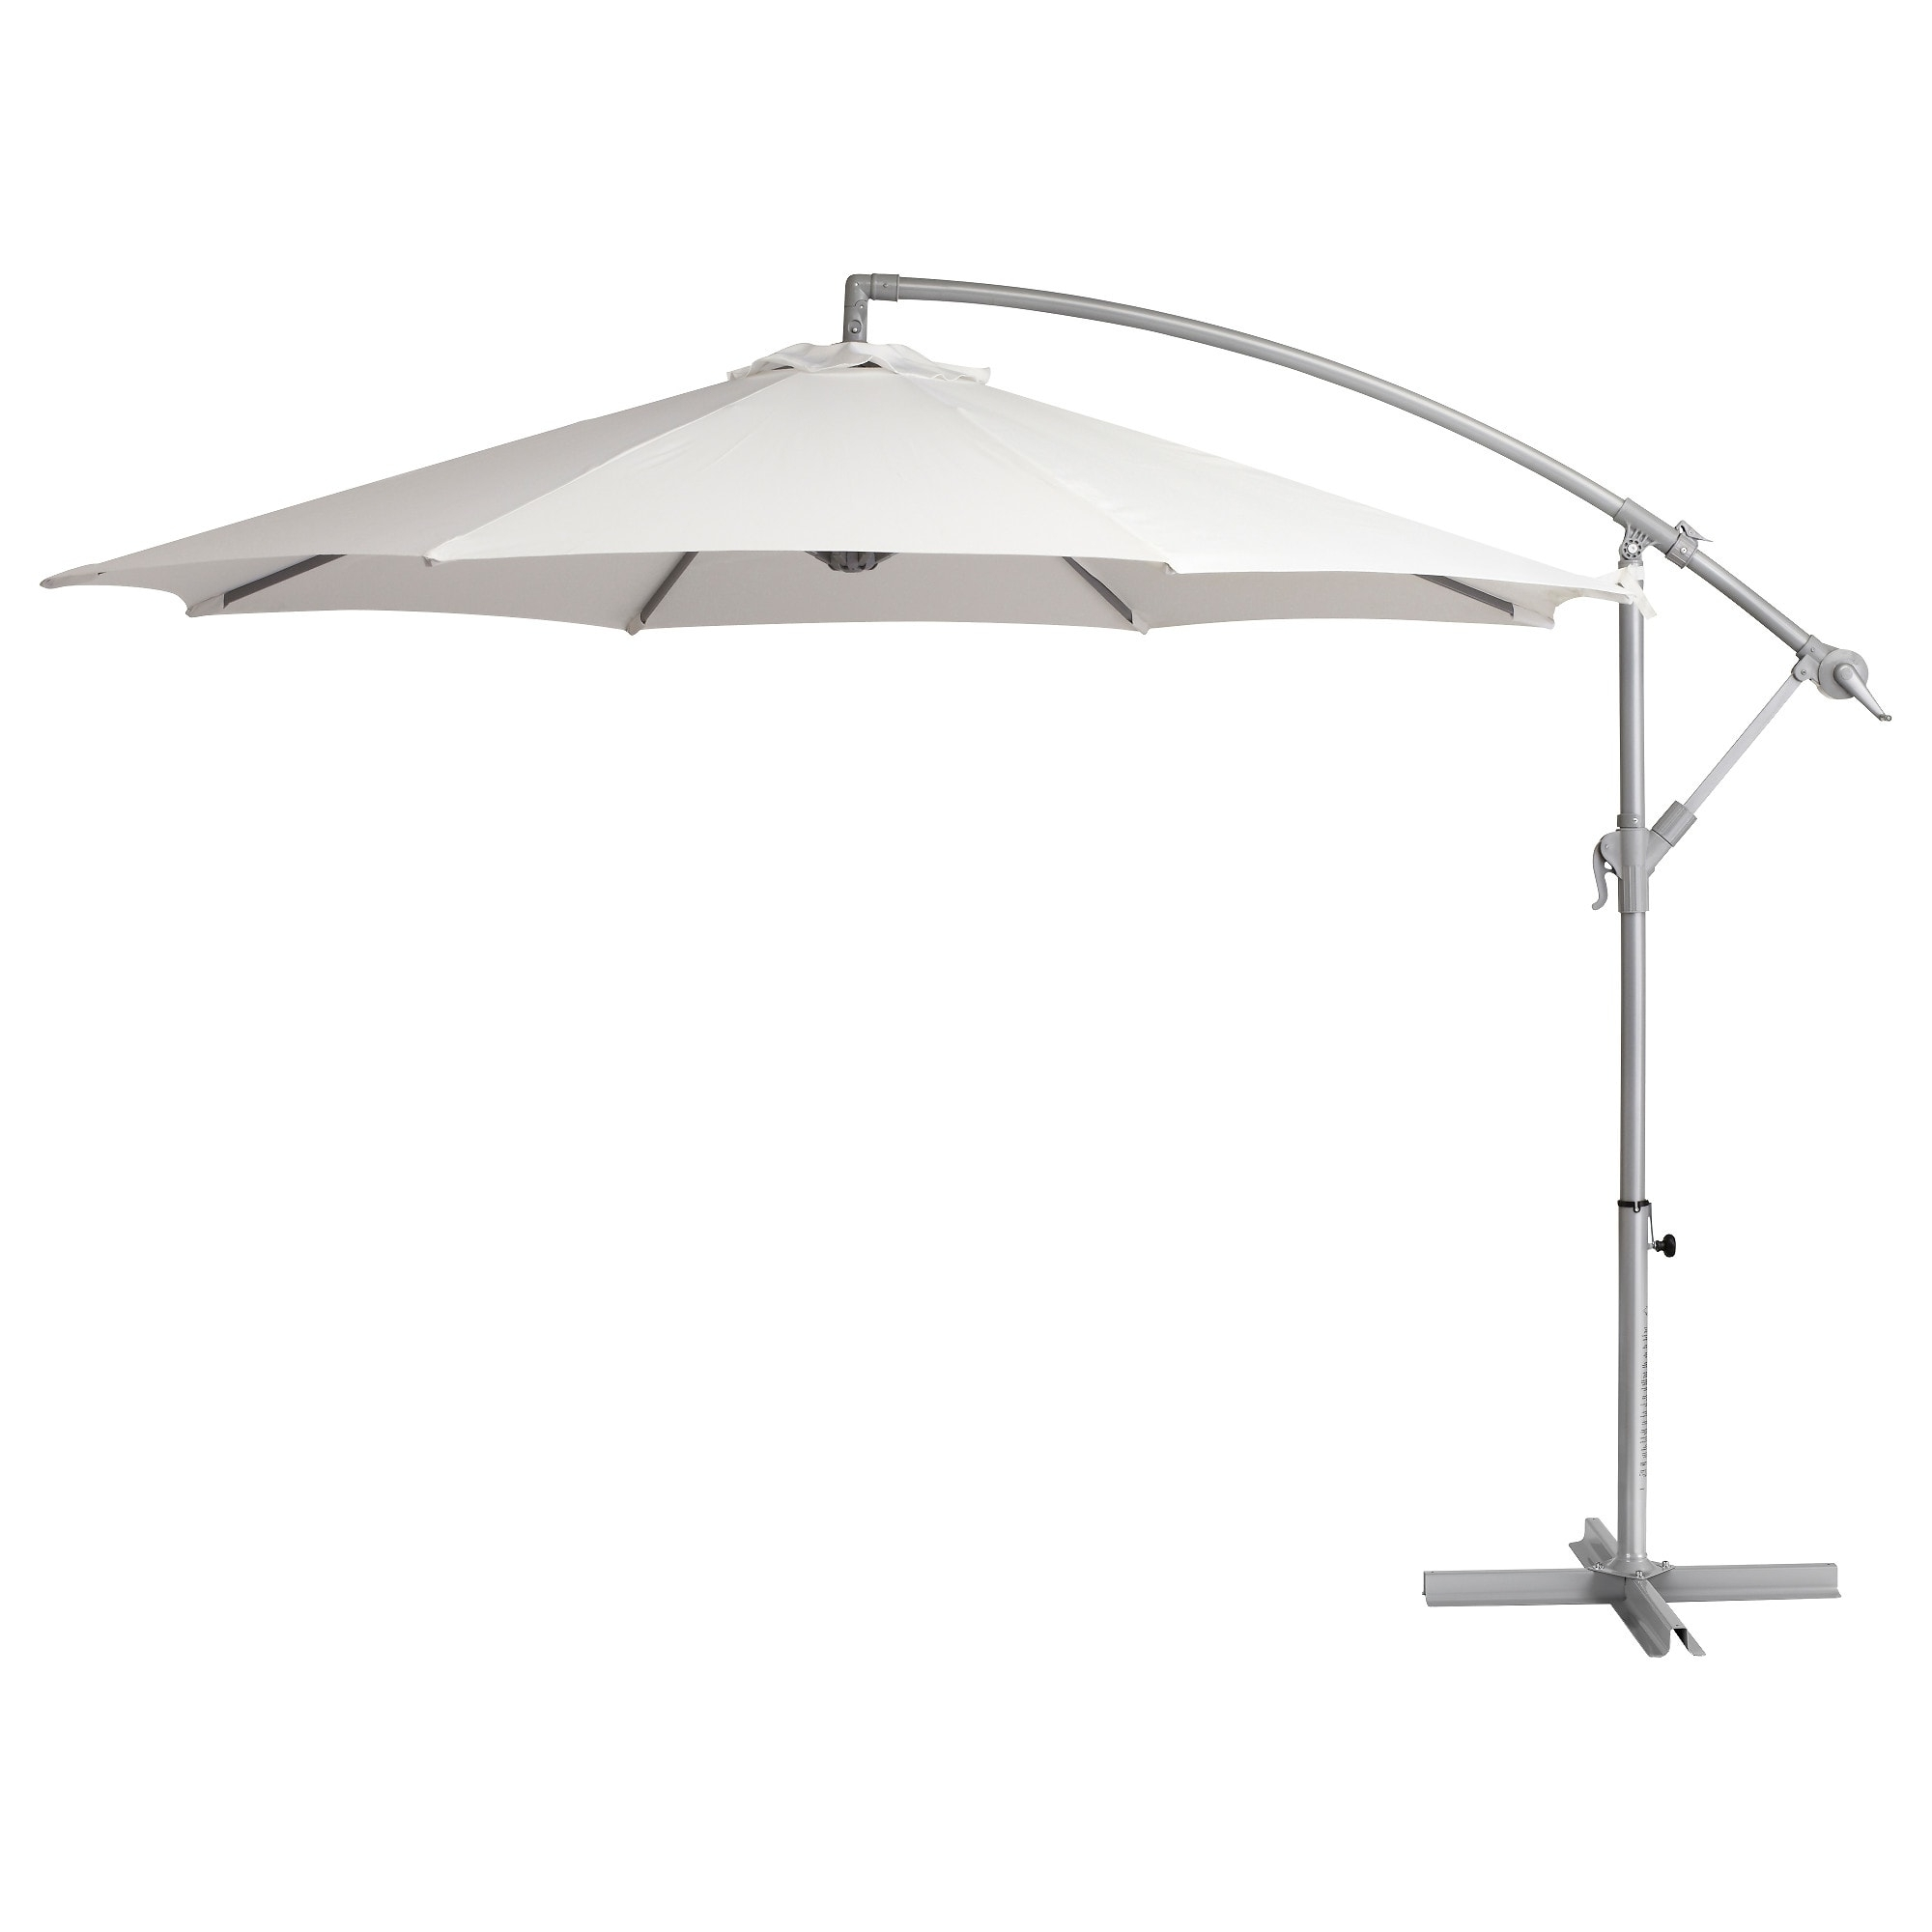 Baggön Offset Patio Umbrella – Ikea With Regard To Widely Used Patio Umbrellas With White Pole (View 6 of 20)